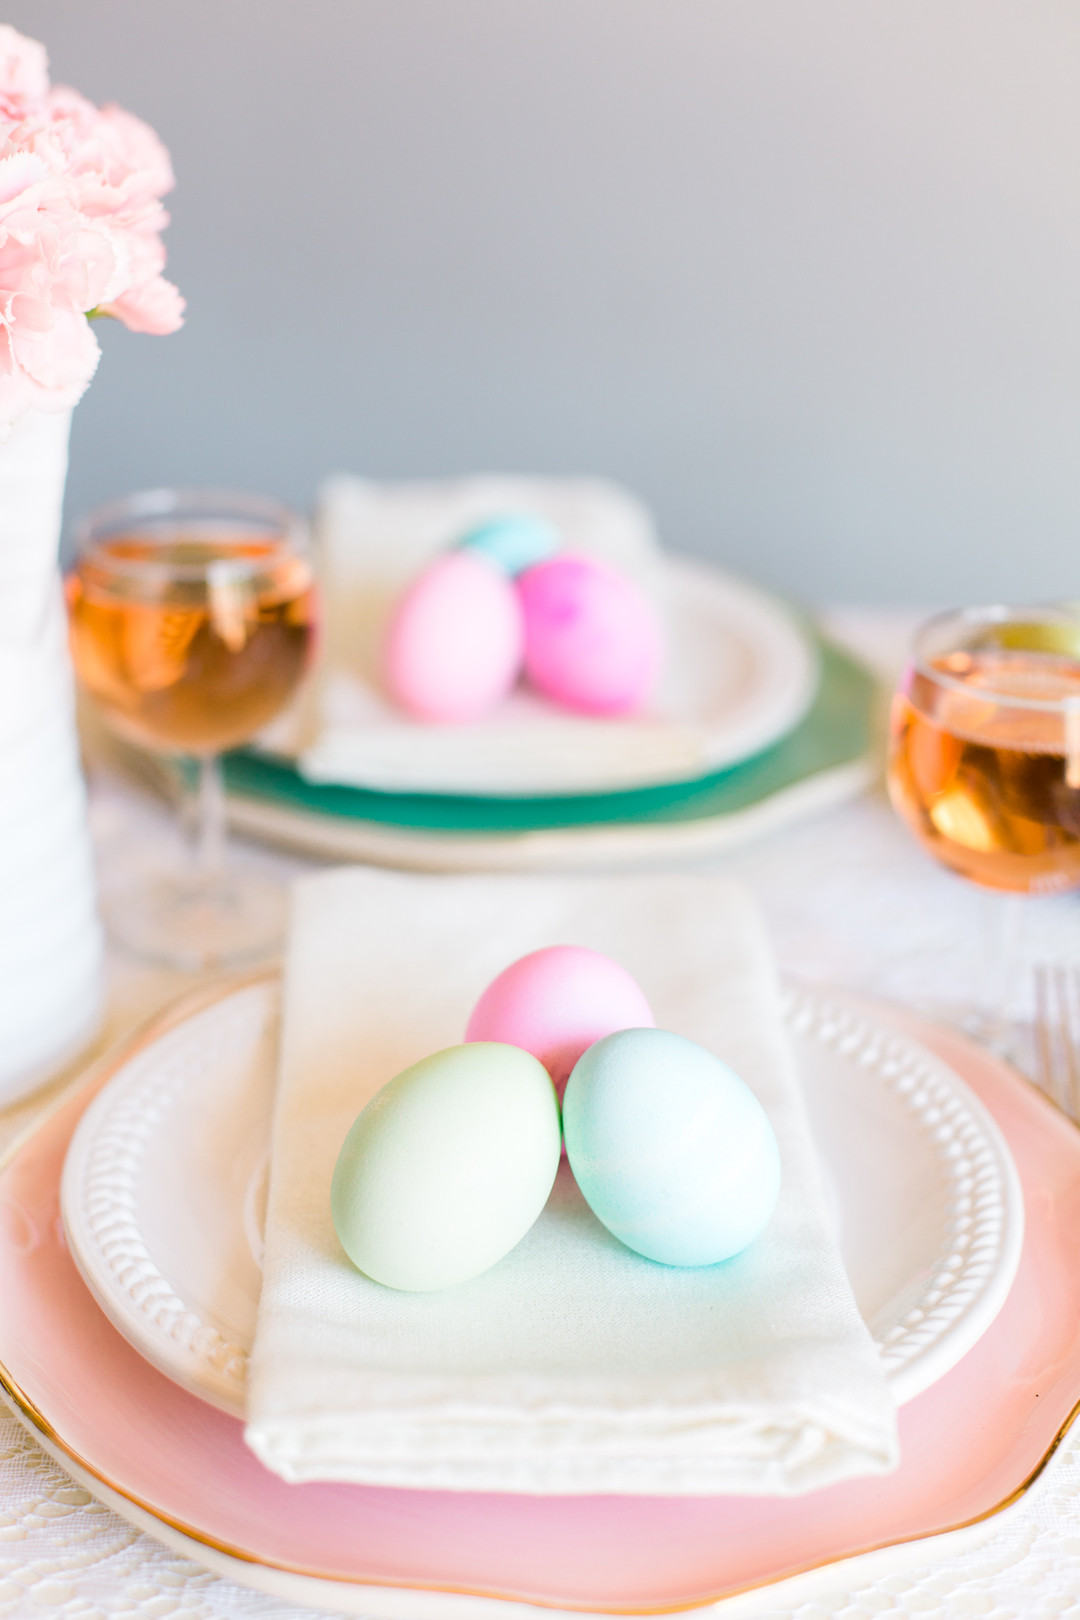 Staal_KristinaStaalPhotography_KristinaStaalPhotographyEasterTablescape20169_big Easy Entertaining: Easter Brunch Inspiration for Two